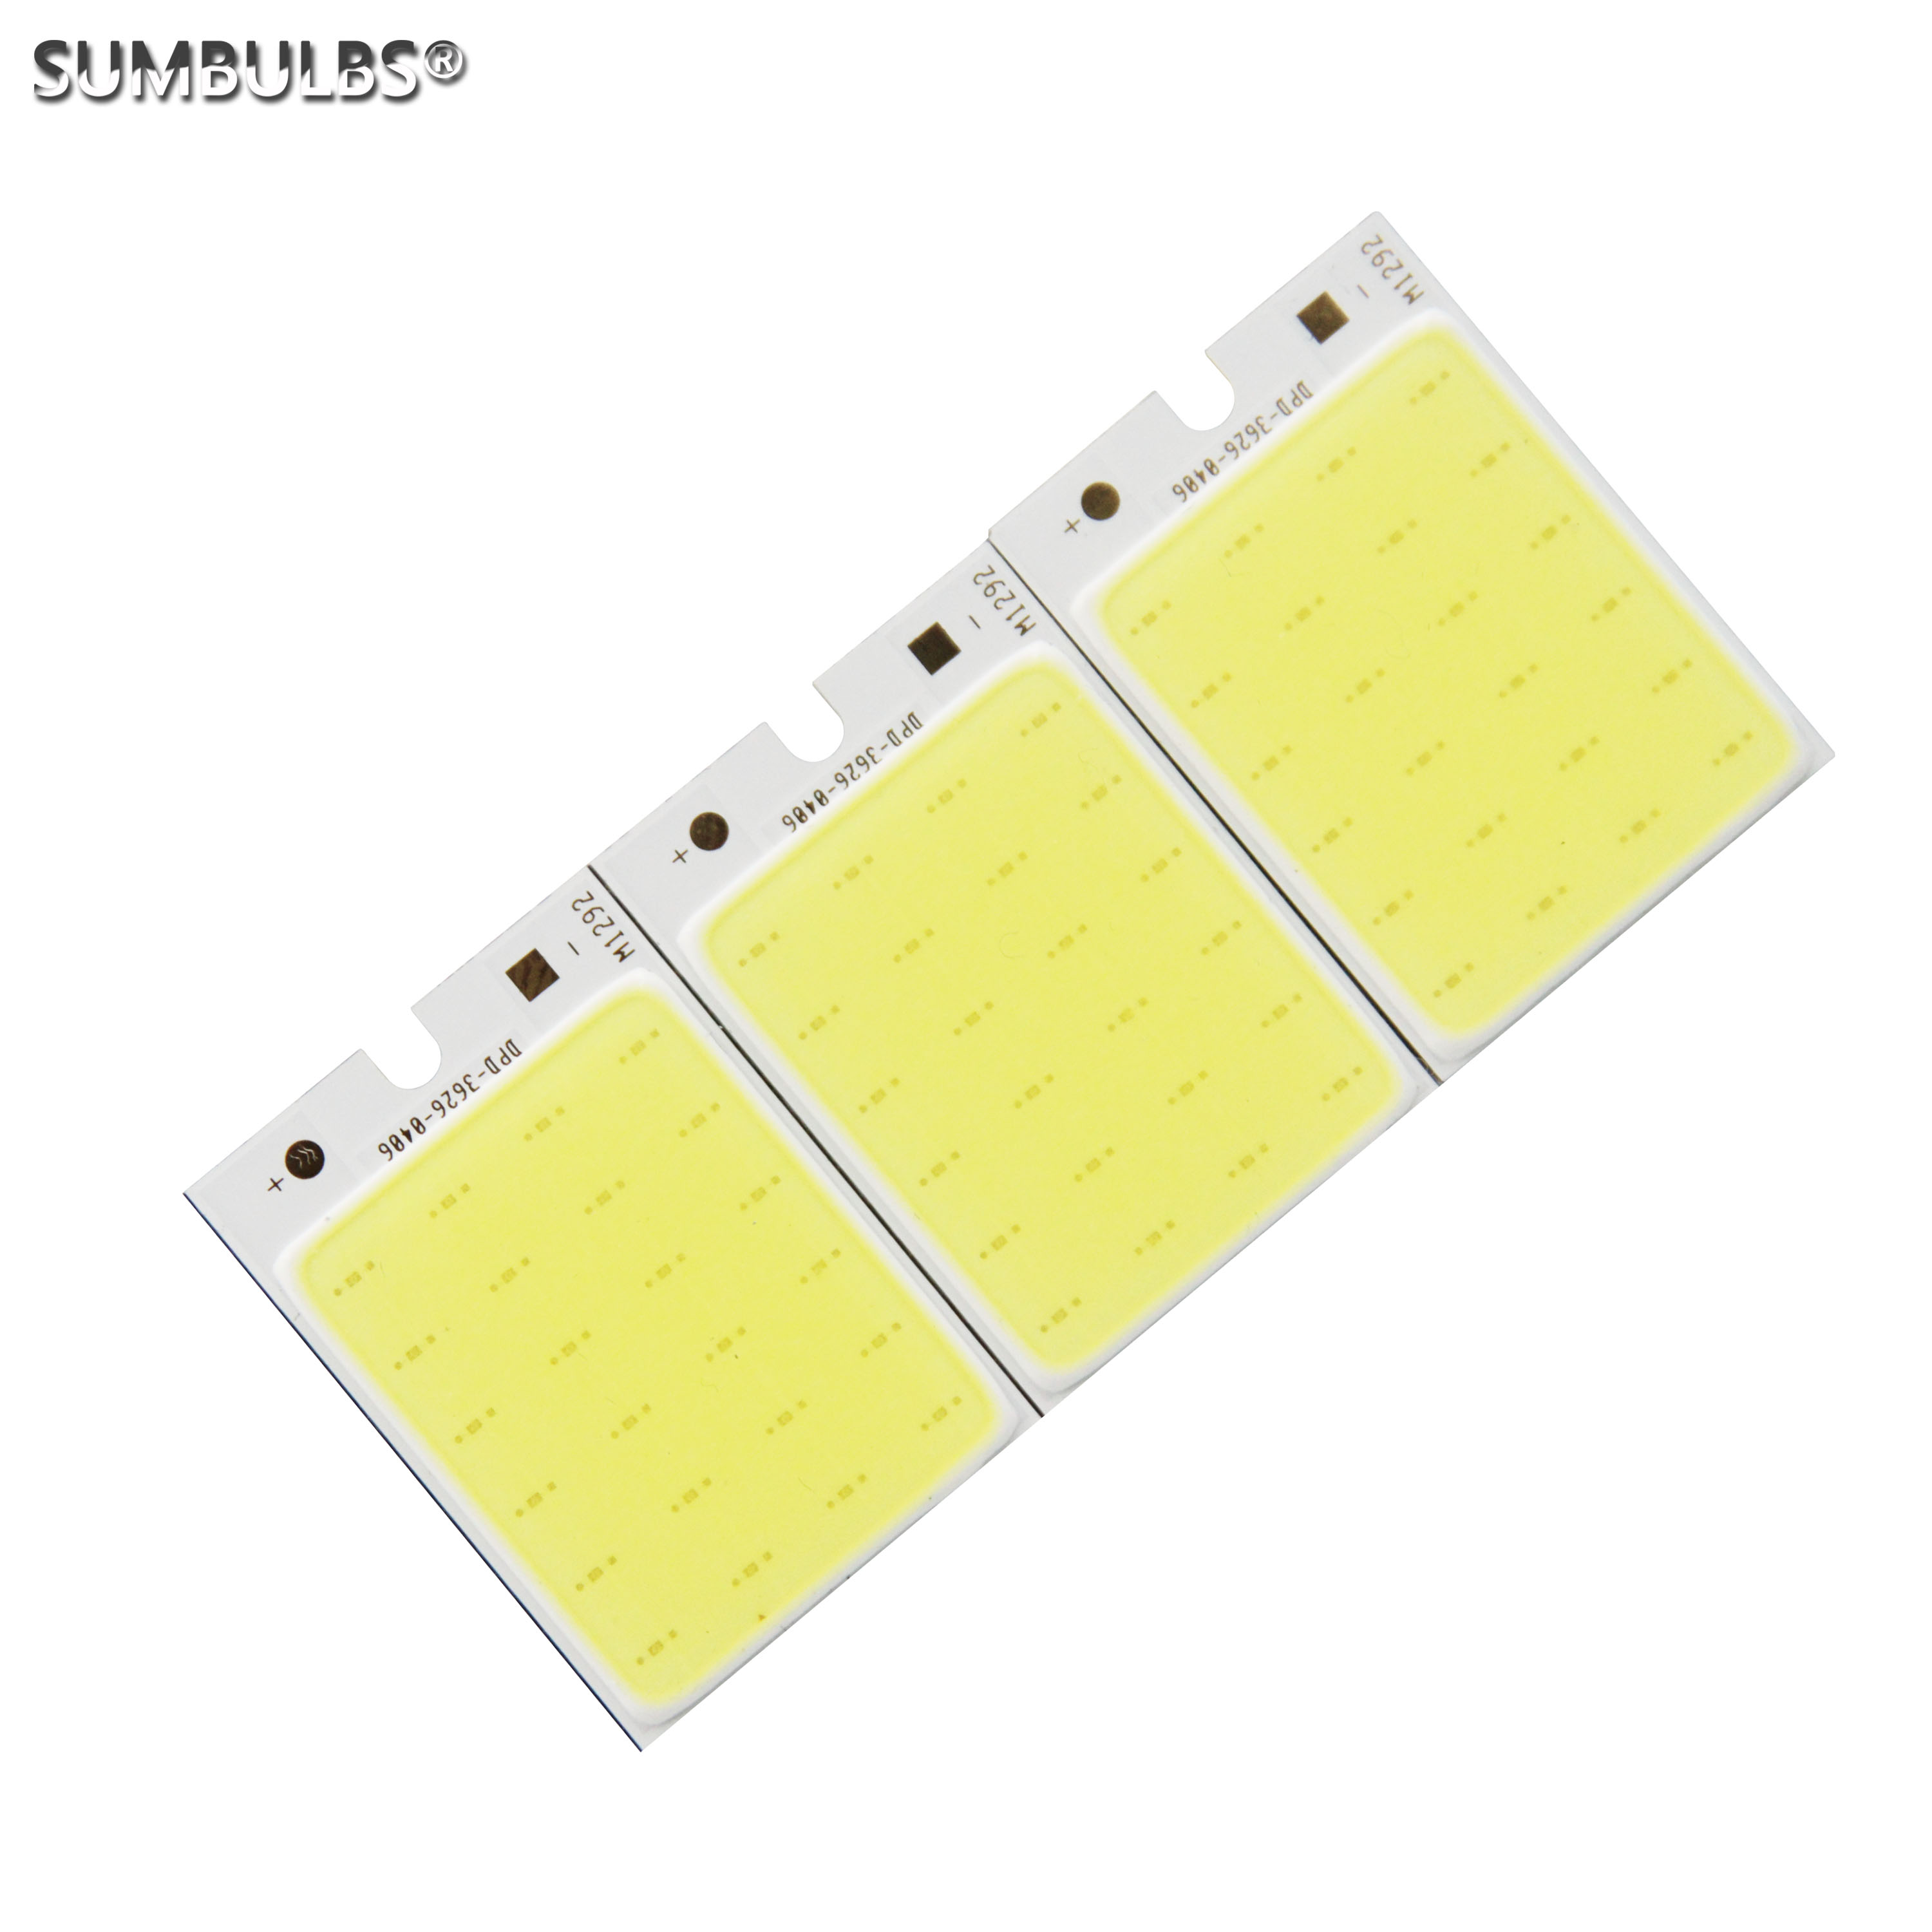 12V 3W LED Light Source 36*26mm Small Size Cob Strip Cold White COB Bulb For Indoor Light Home Work Decor Lamp Automotive Bulb